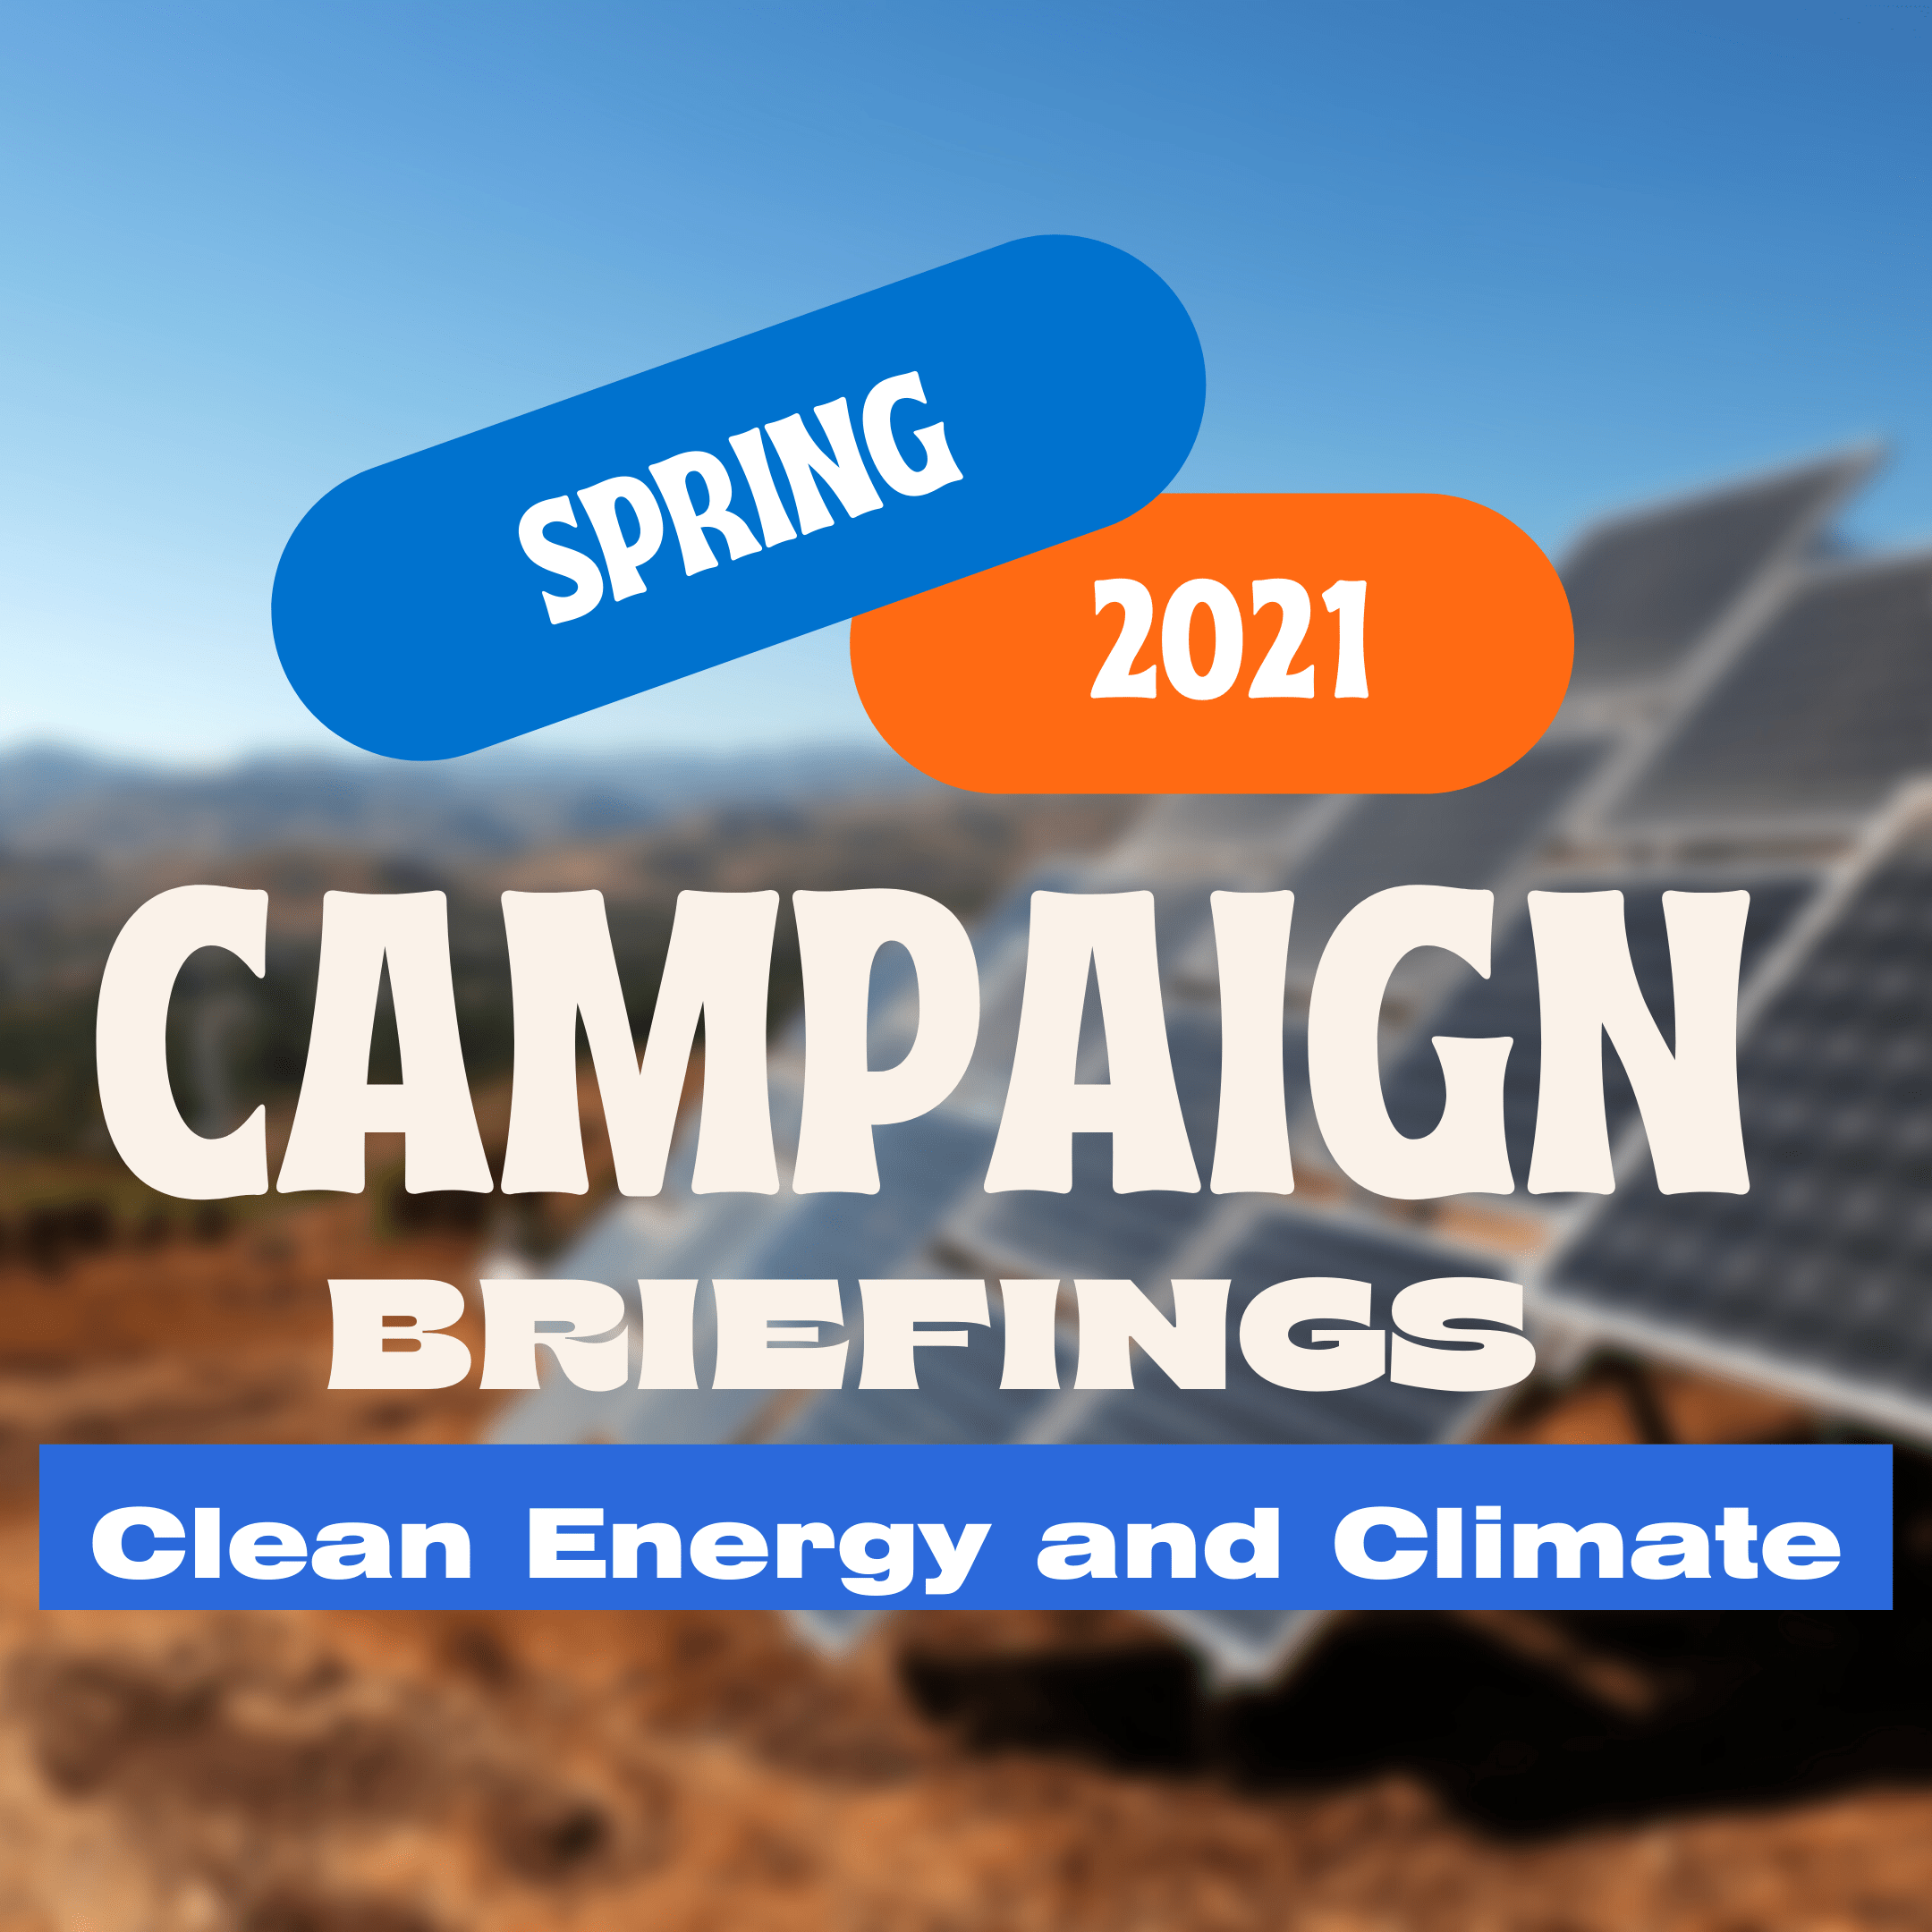 """Blurred image of solar panels in desert. Text that says """" Spring 2021 Campaign Briefings: Clean Energy and Climate."""